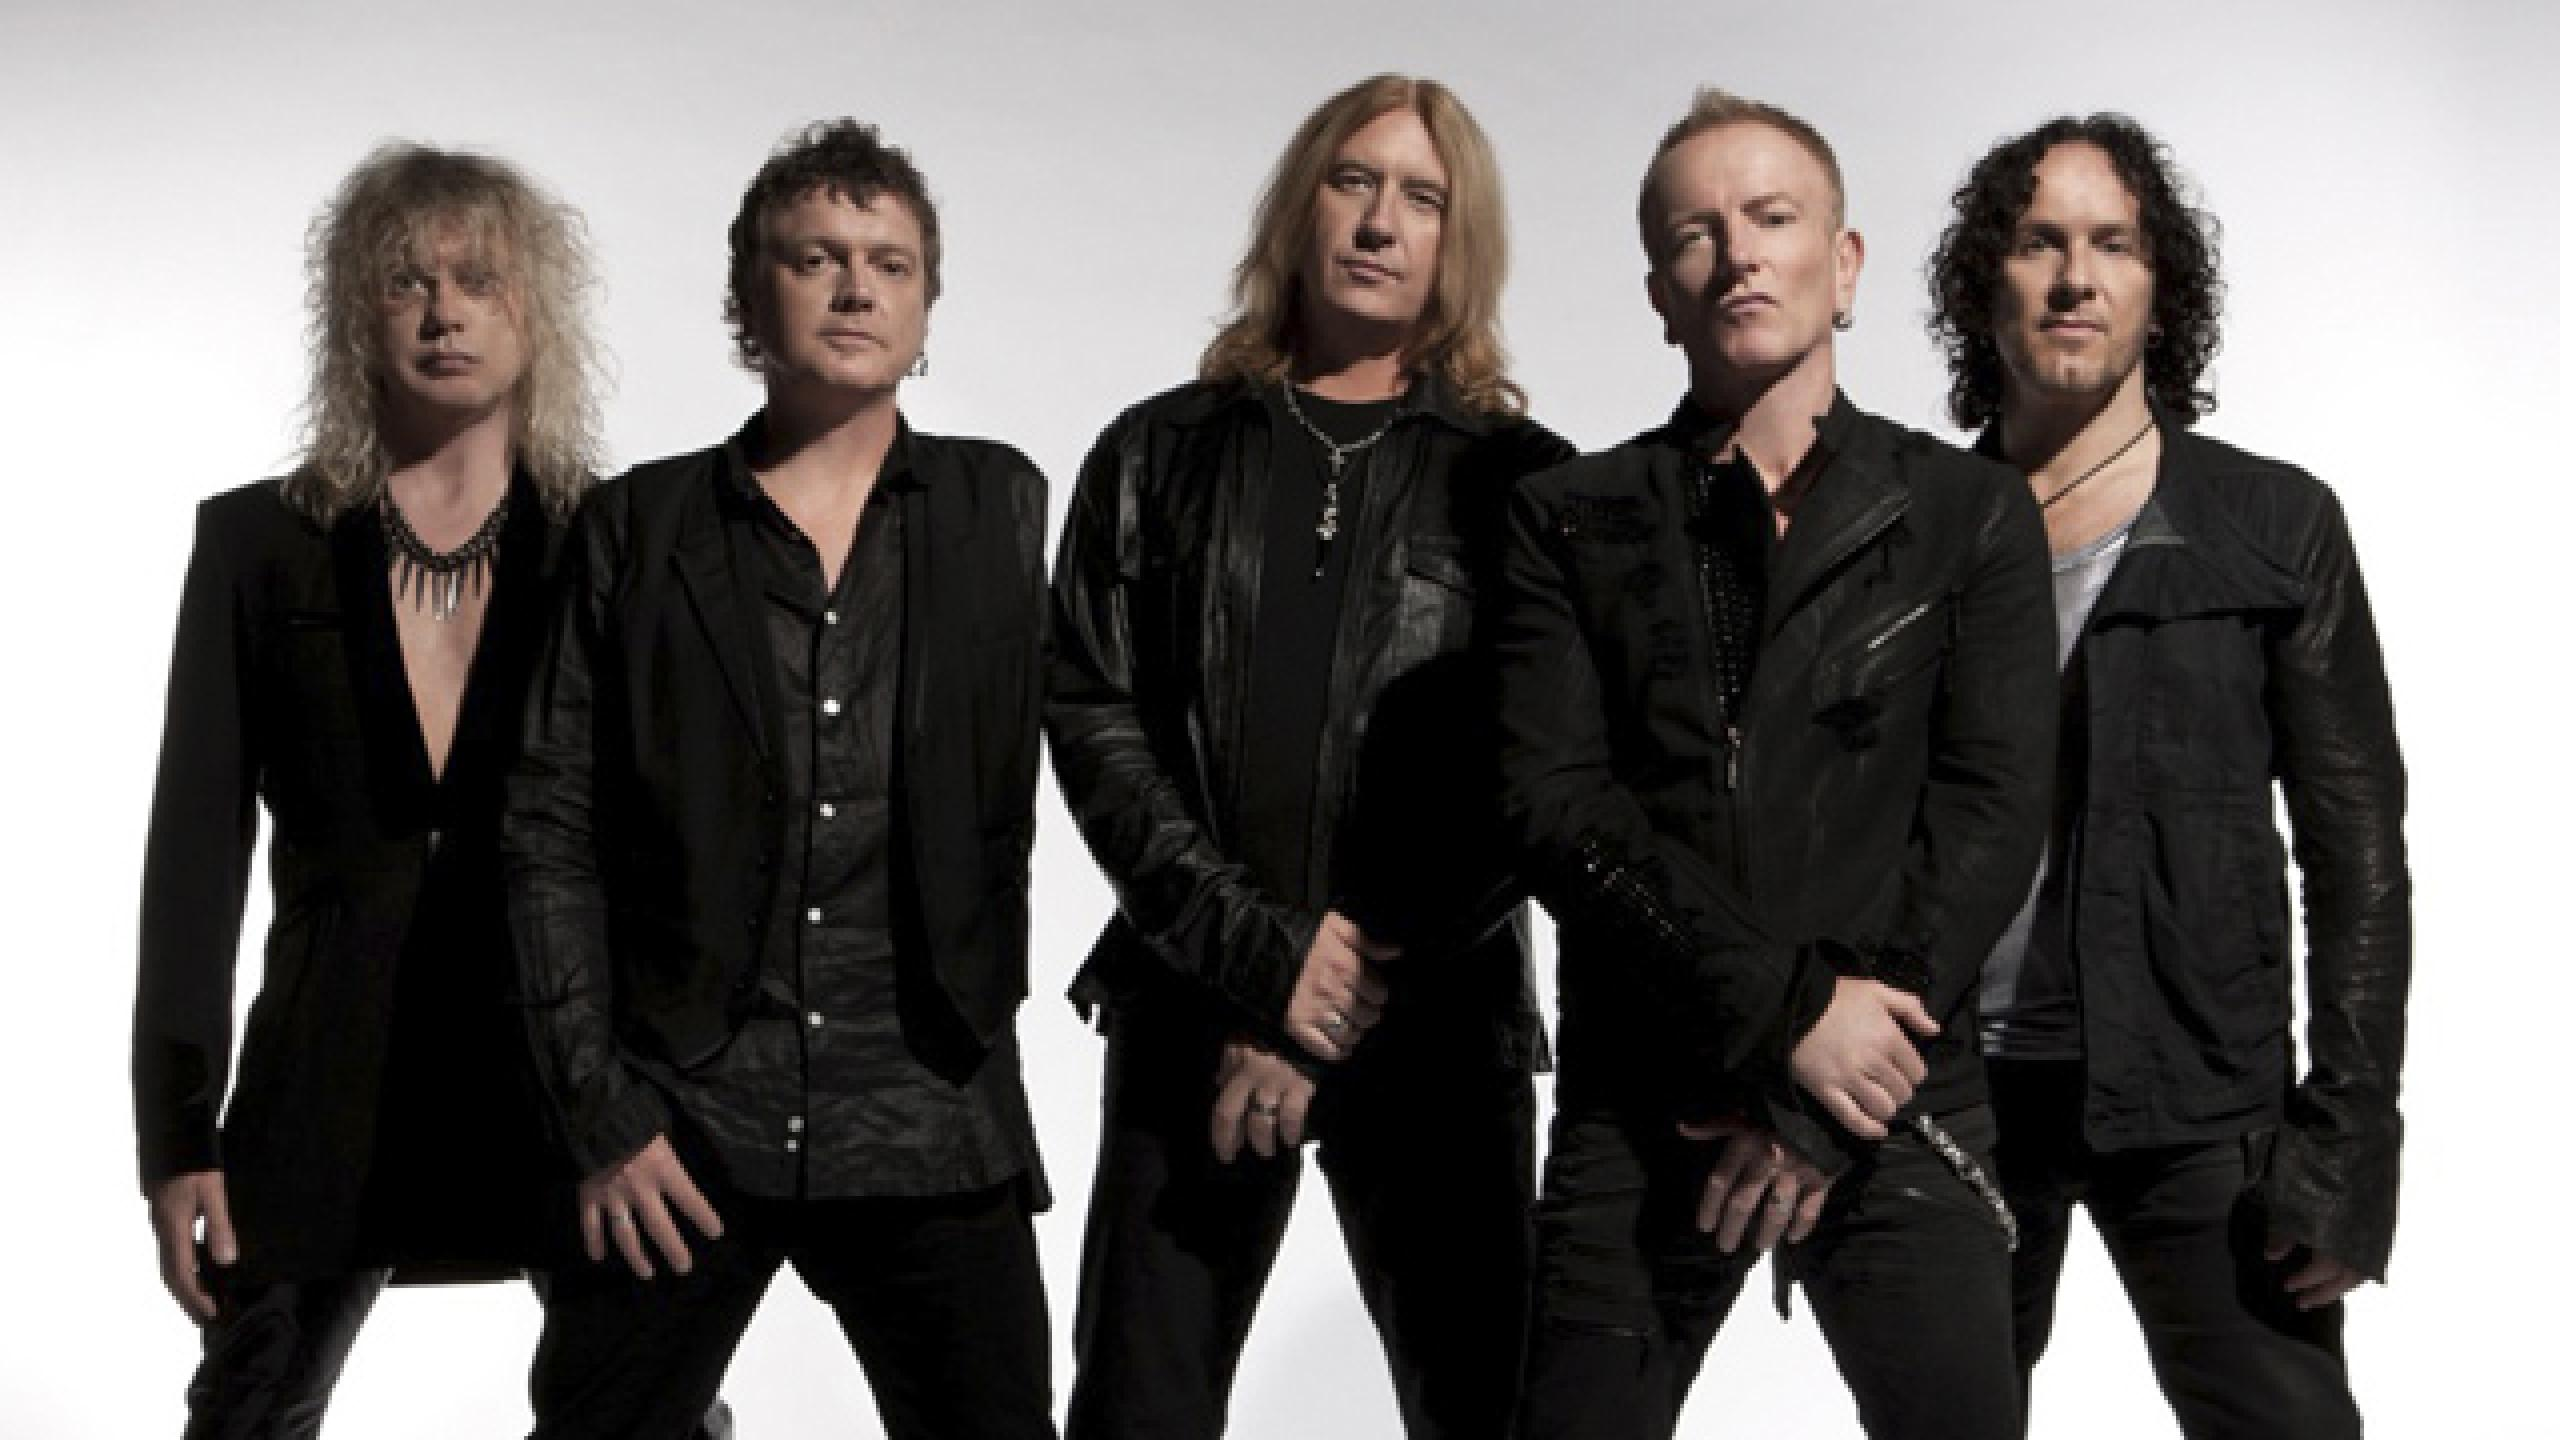 Def Leppard Journey Tour 2020.Def Leppard Tour Dates 2019 2020 Def Leppard Tickets And